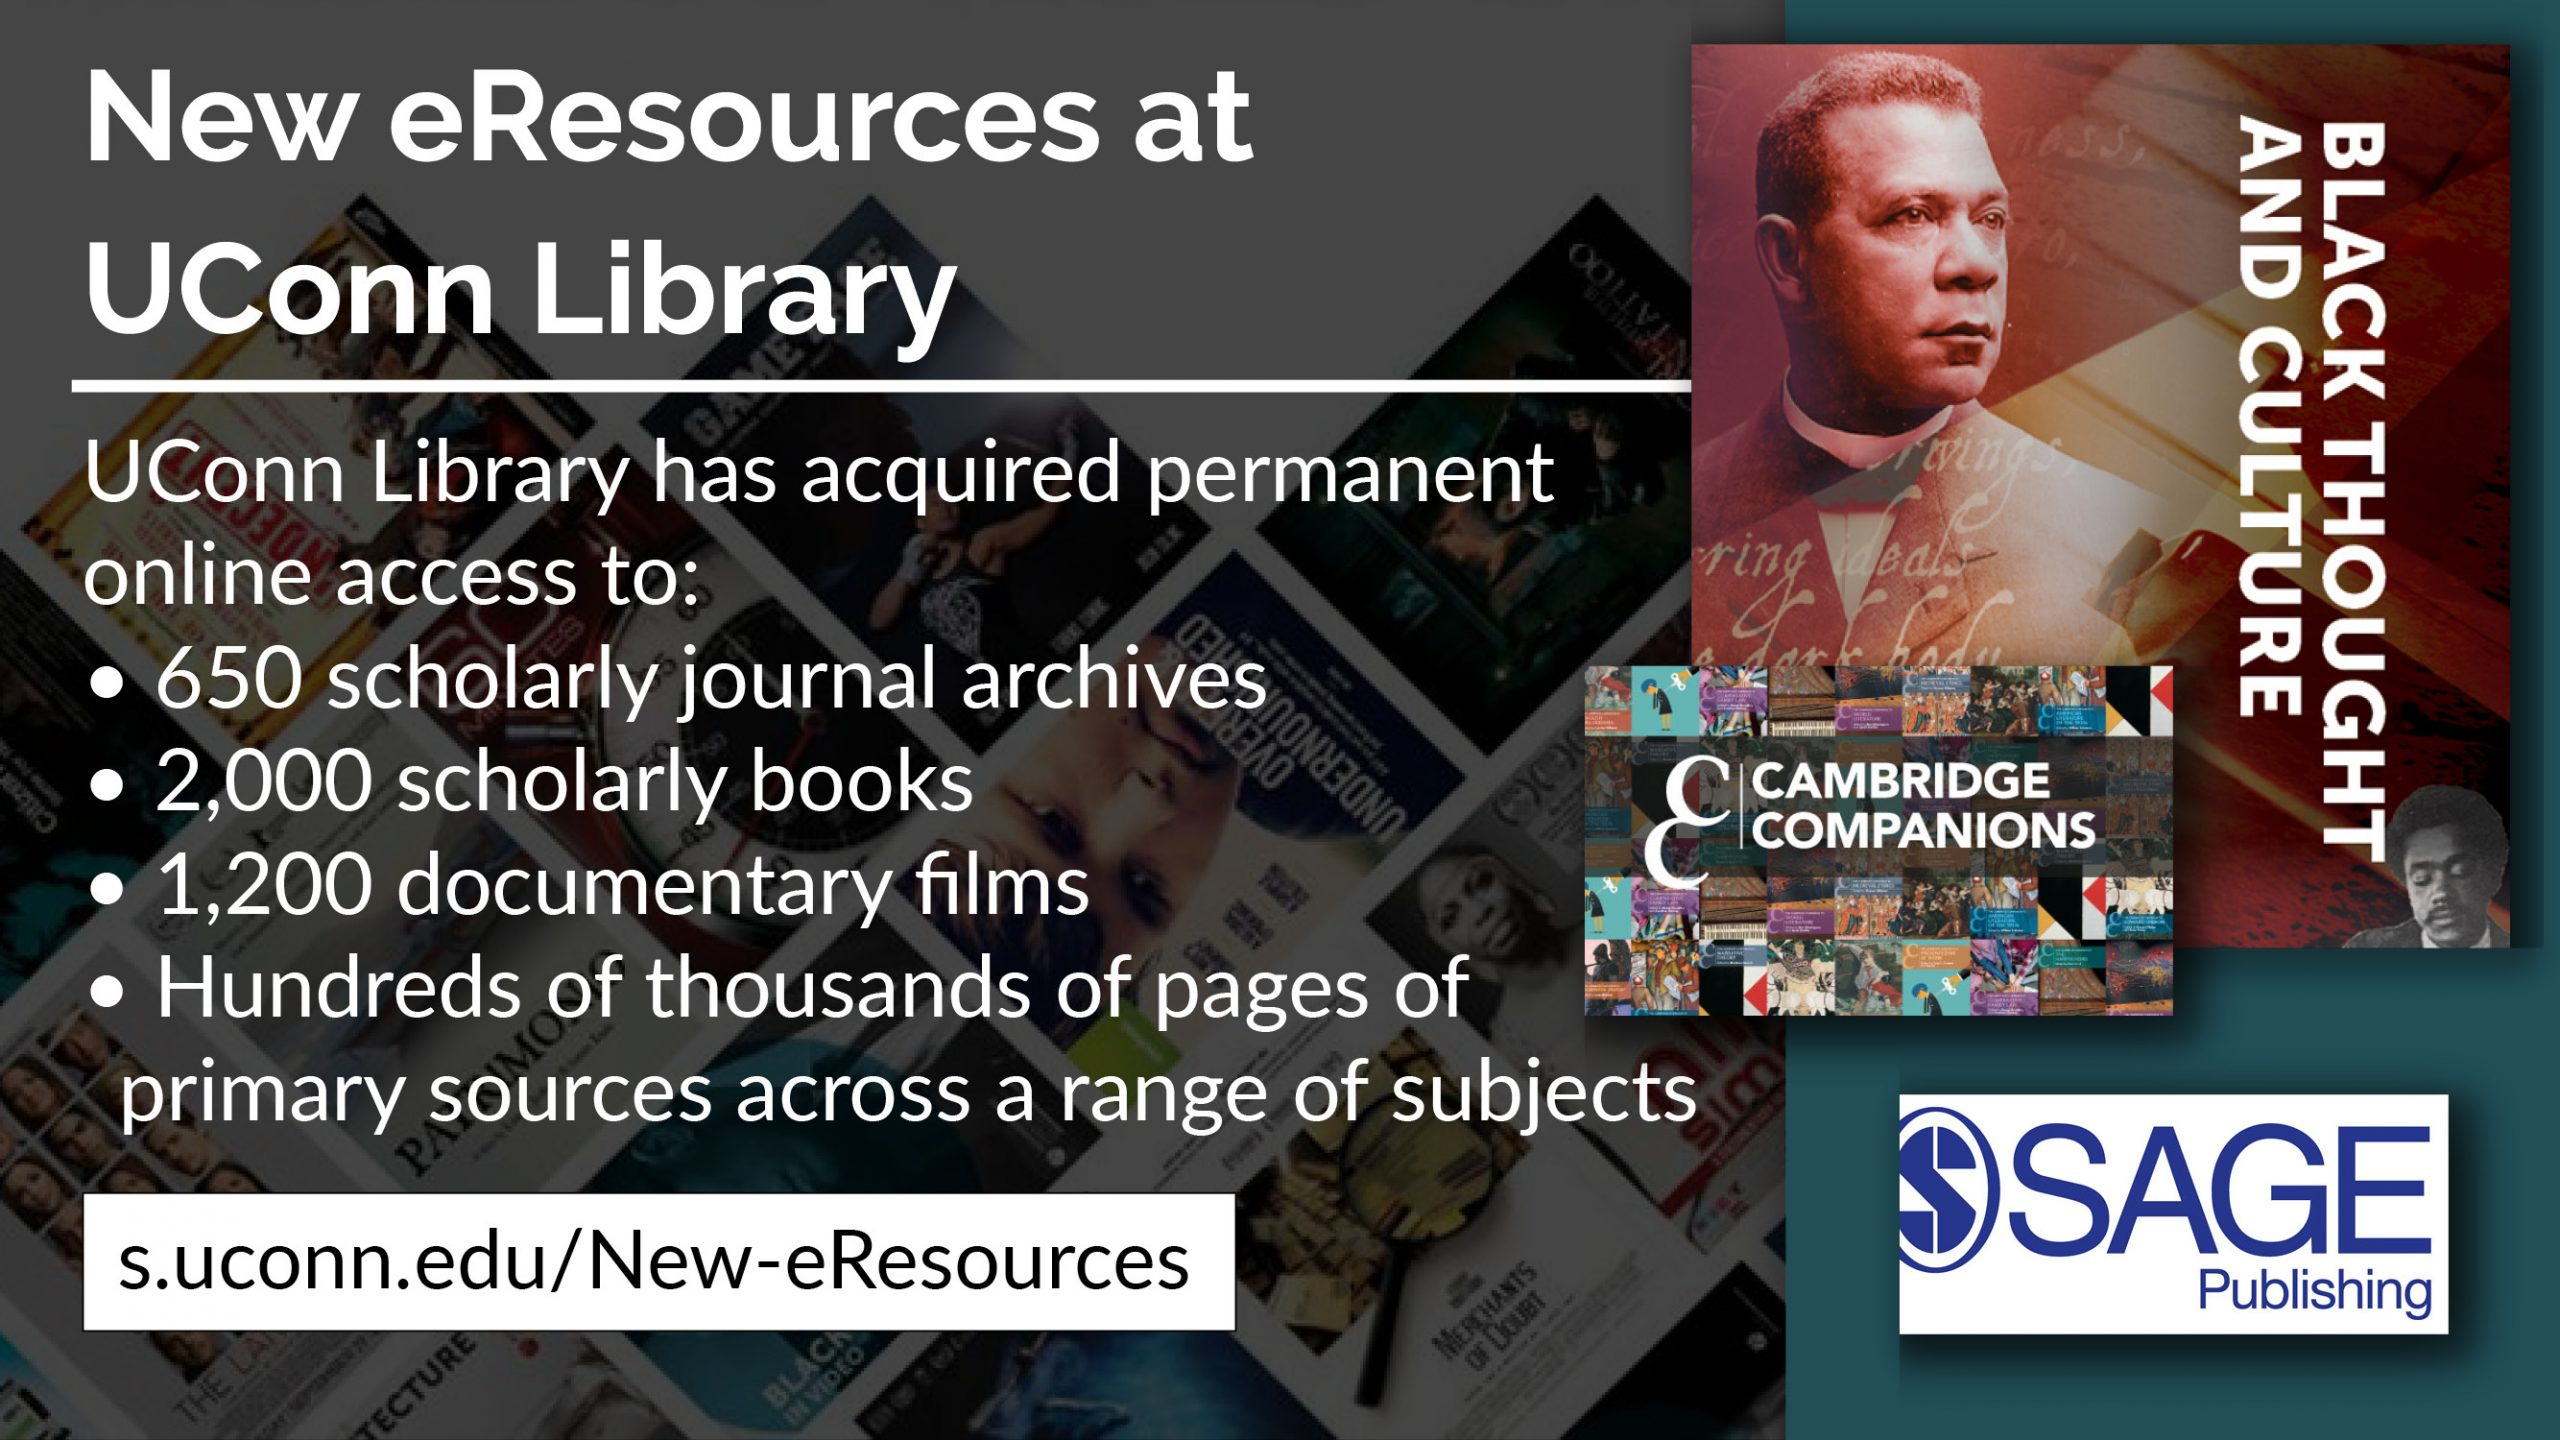 New e-resources at UConn Library: UConn Library has acquired permanent online access to: 650 scholarly journal archives 2,000 scholarly books 1,200 documentary films Hundreds of thousands of pages of primary sources across a range of subjects. s.uconn.edu/new-eresources